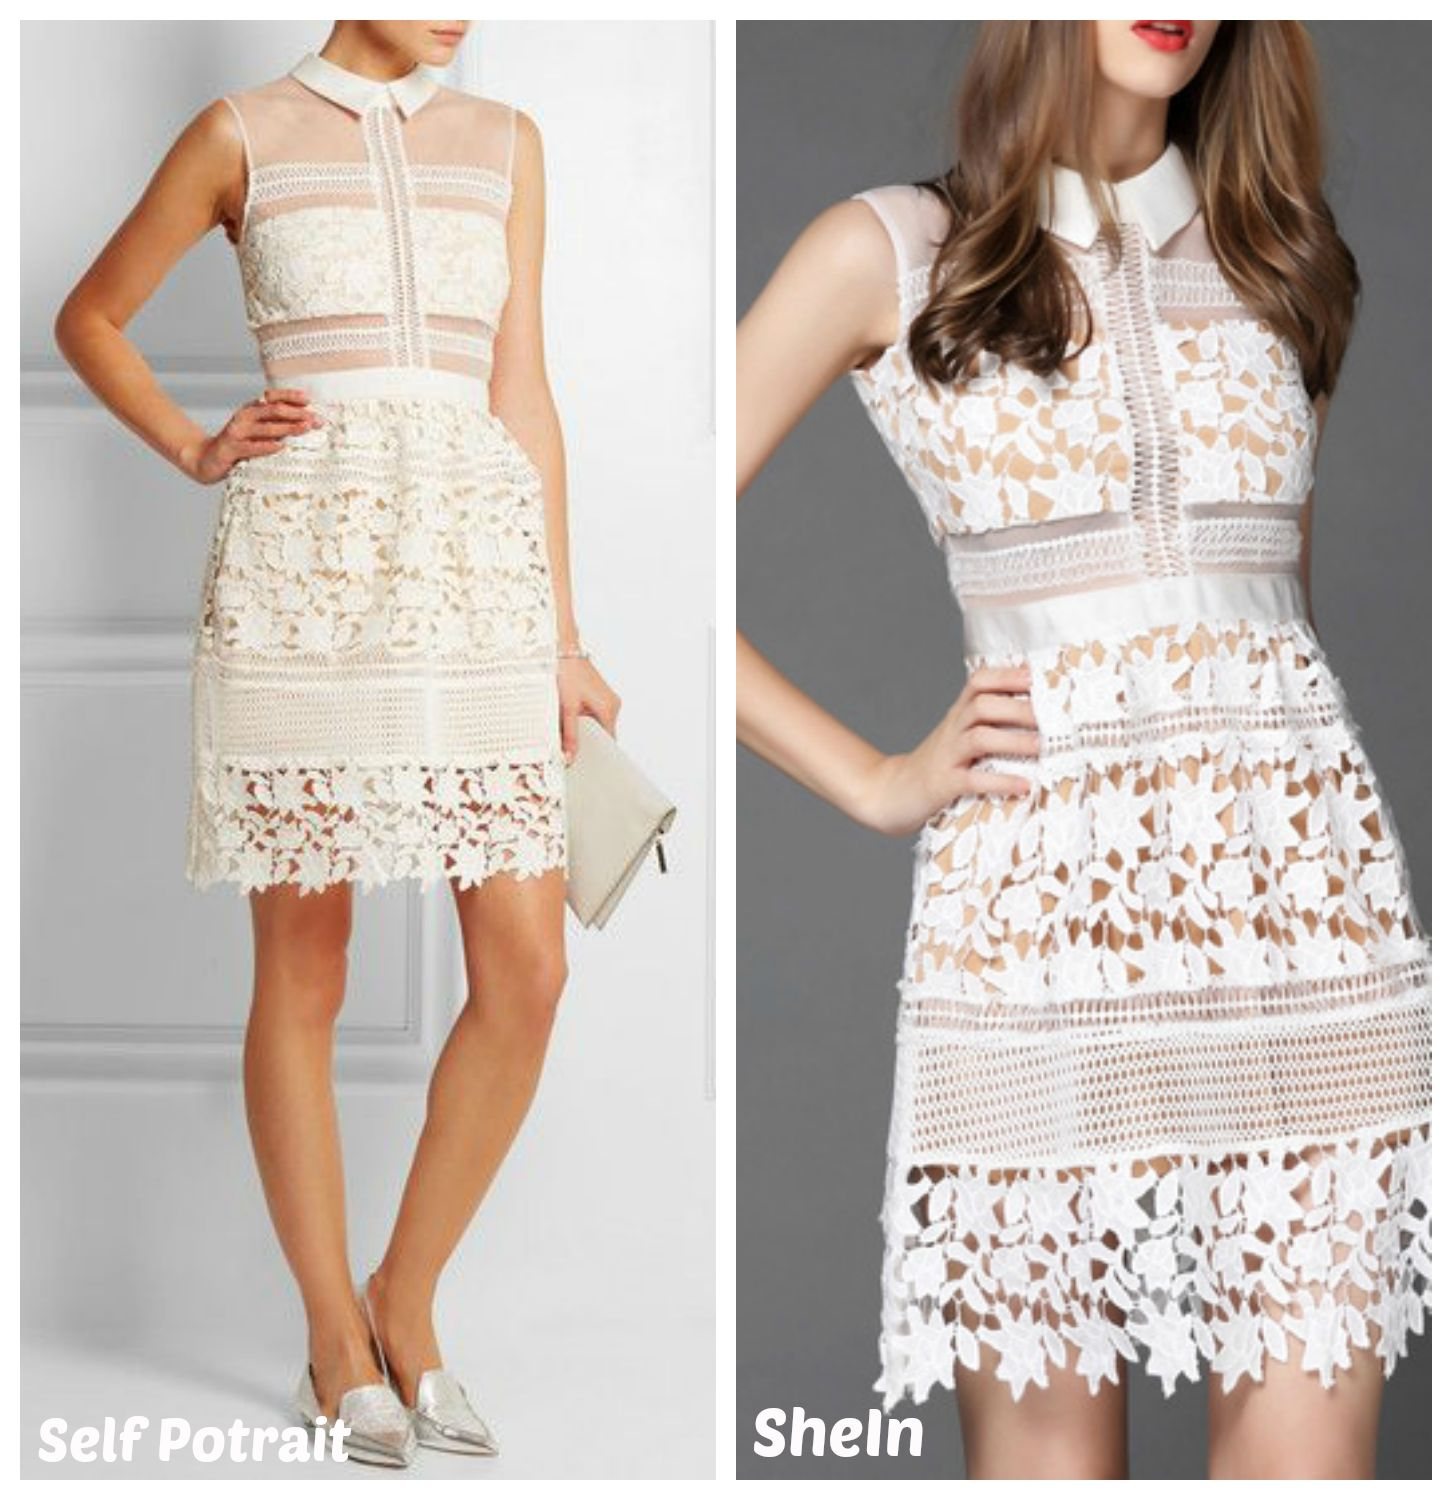 www.shein.com/White-Lapel-Sleeveless-Floral-Crochet-Dress-p-220469-cat-1727.html?aff_id=3846